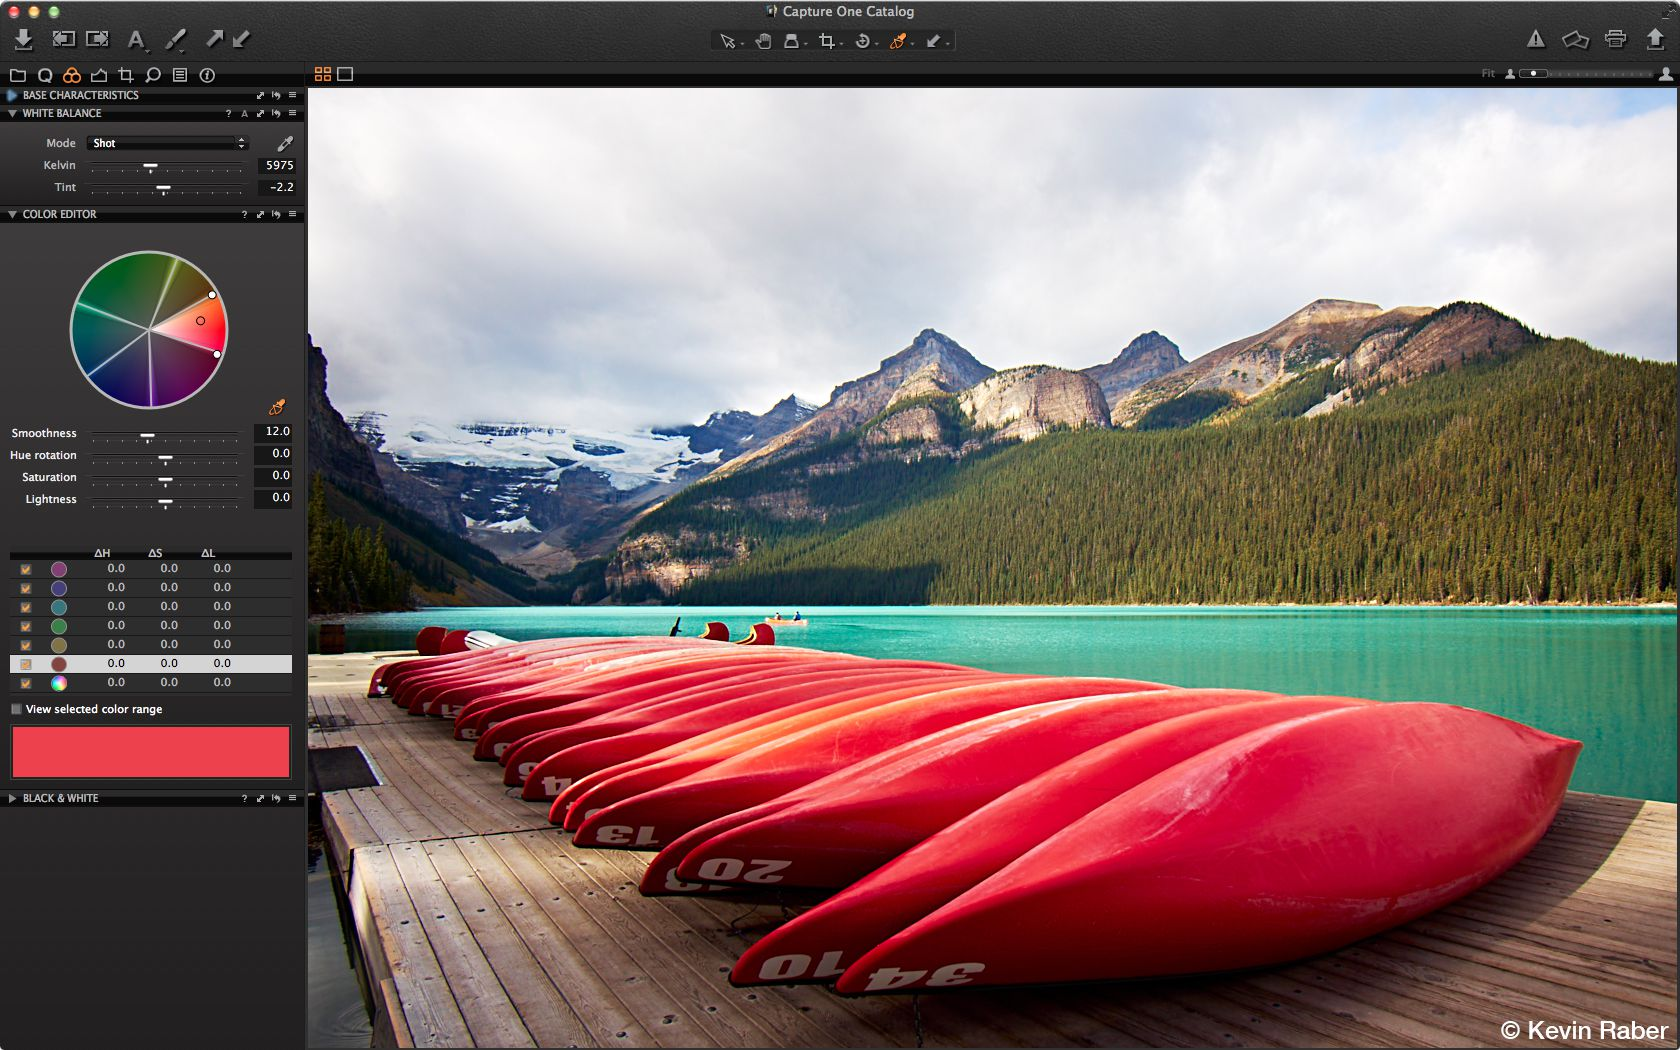 Capture One 7 Express interface